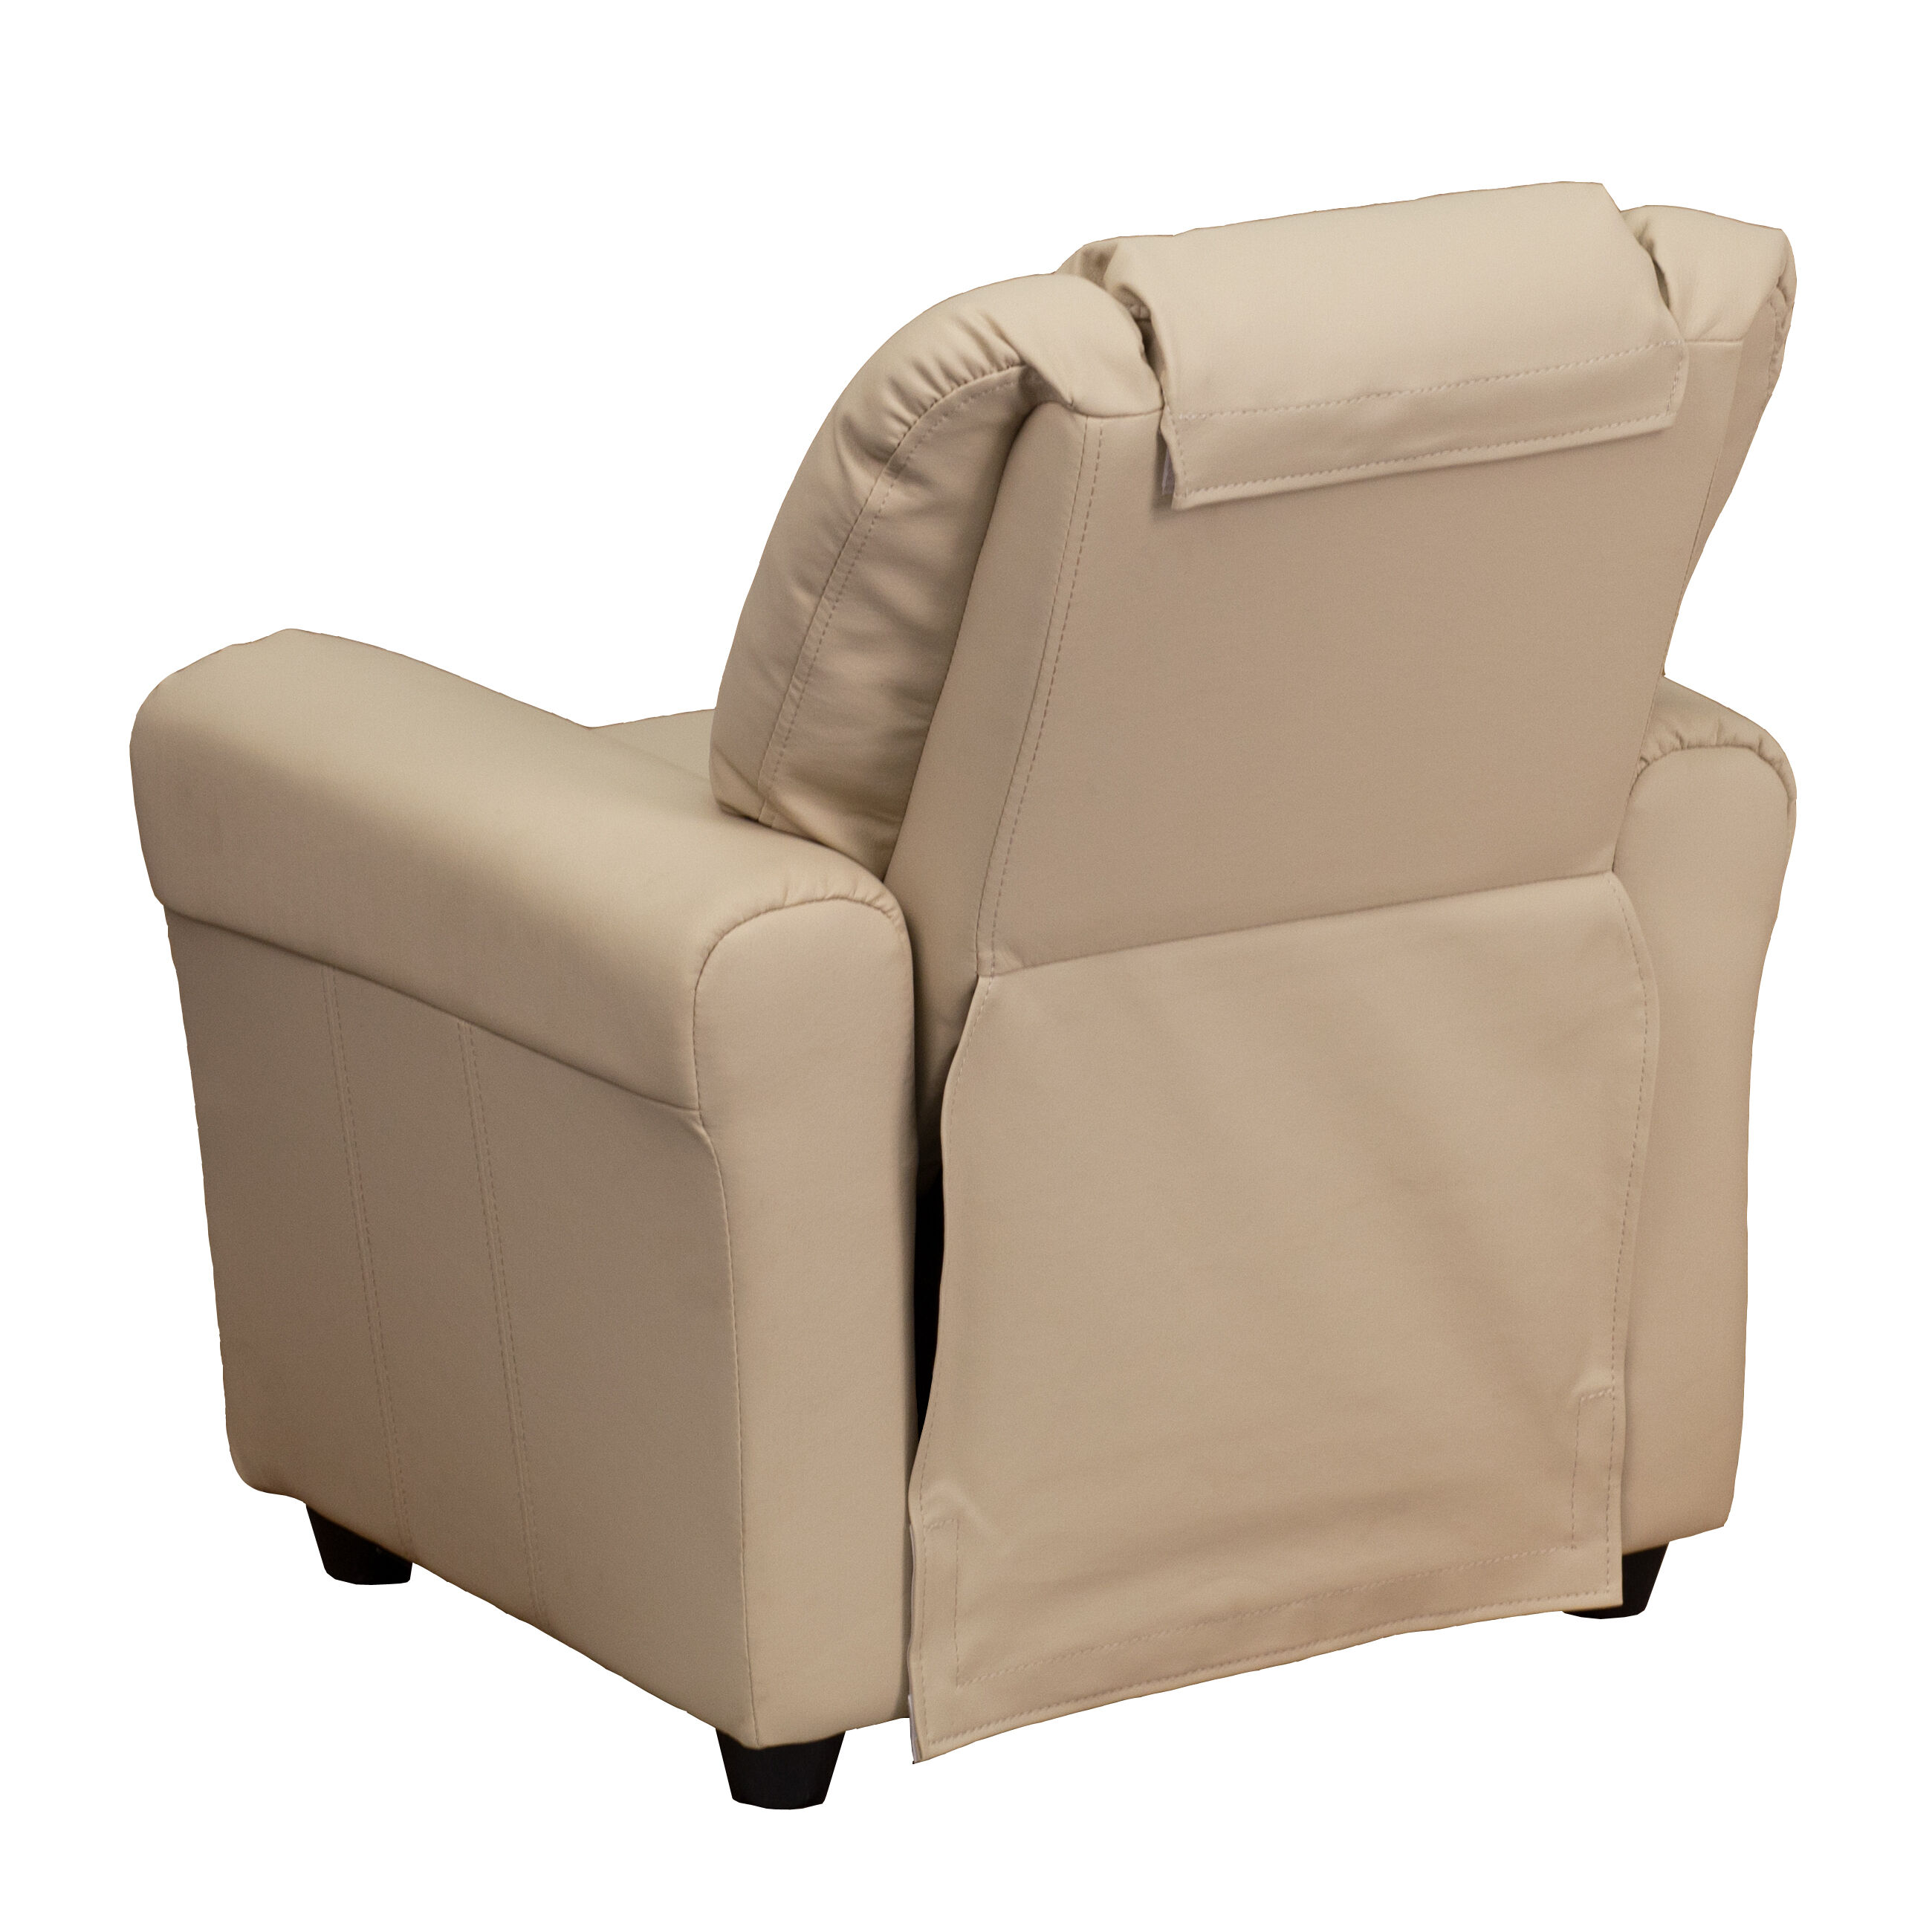 Our Contemporary Beige Vinyl Kids Recliner With Cup Holder And Headrest Is  On Sale Now.